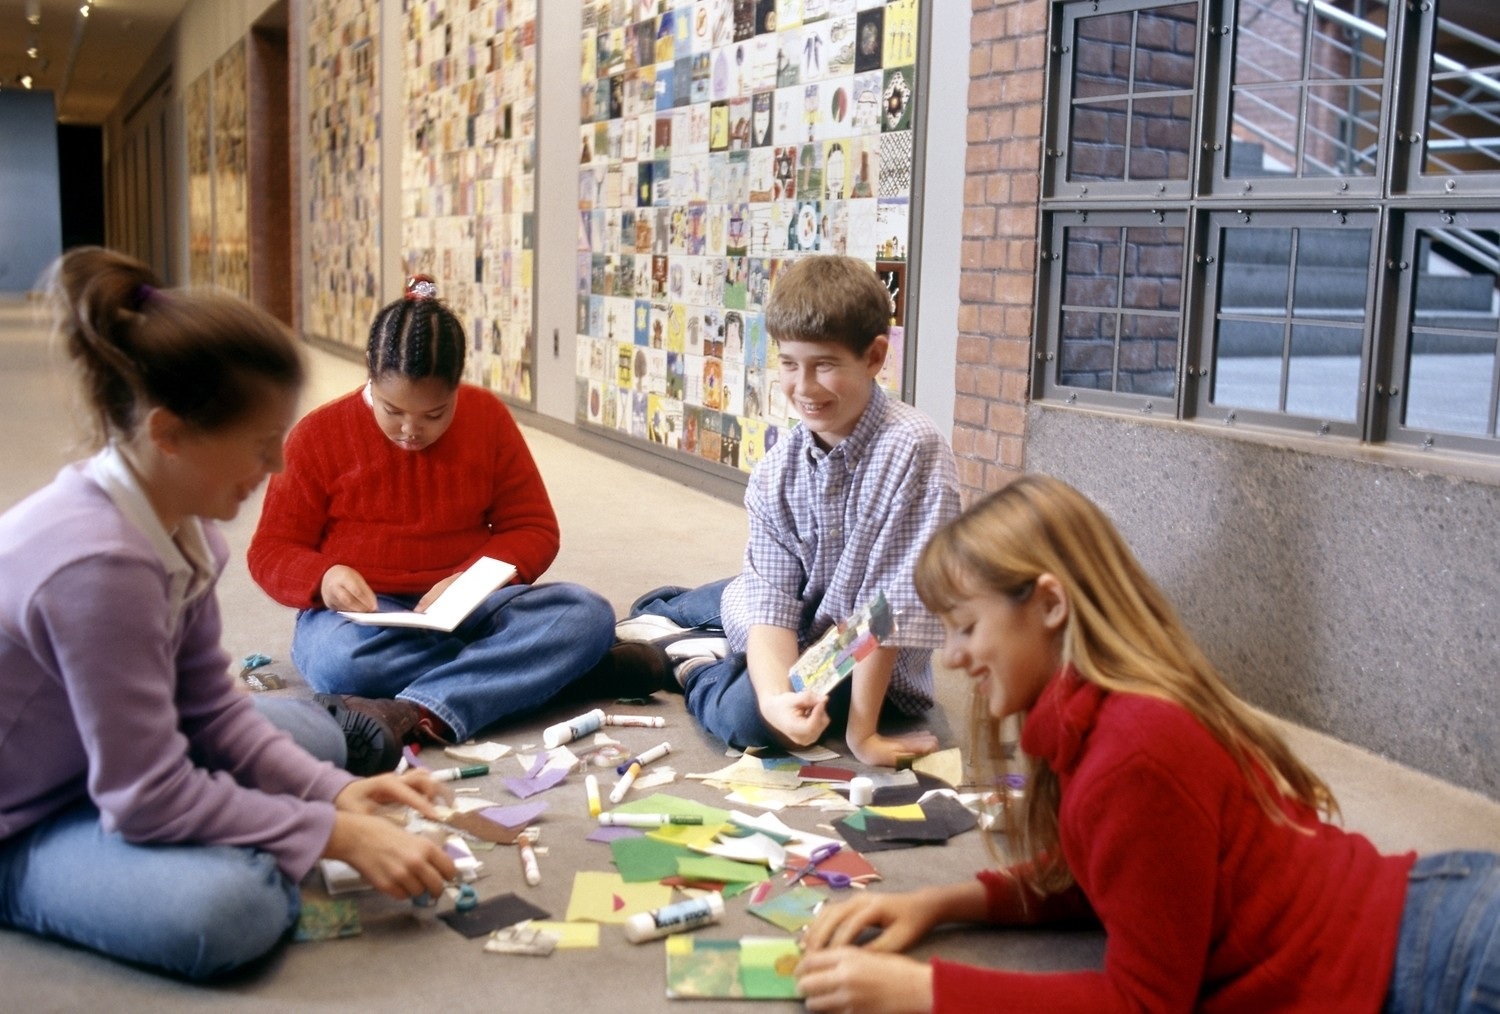 Children take part in an activity at the Tile Wall, U.S. Holocaust Memorial Museum.  The United States Holocaust Memorial Museum offers parents and children ages 9 to 12 family-oriented Sunday programs that creatively introduce the history chronicled in the Museum in a format tailored to a child's sensibilities.